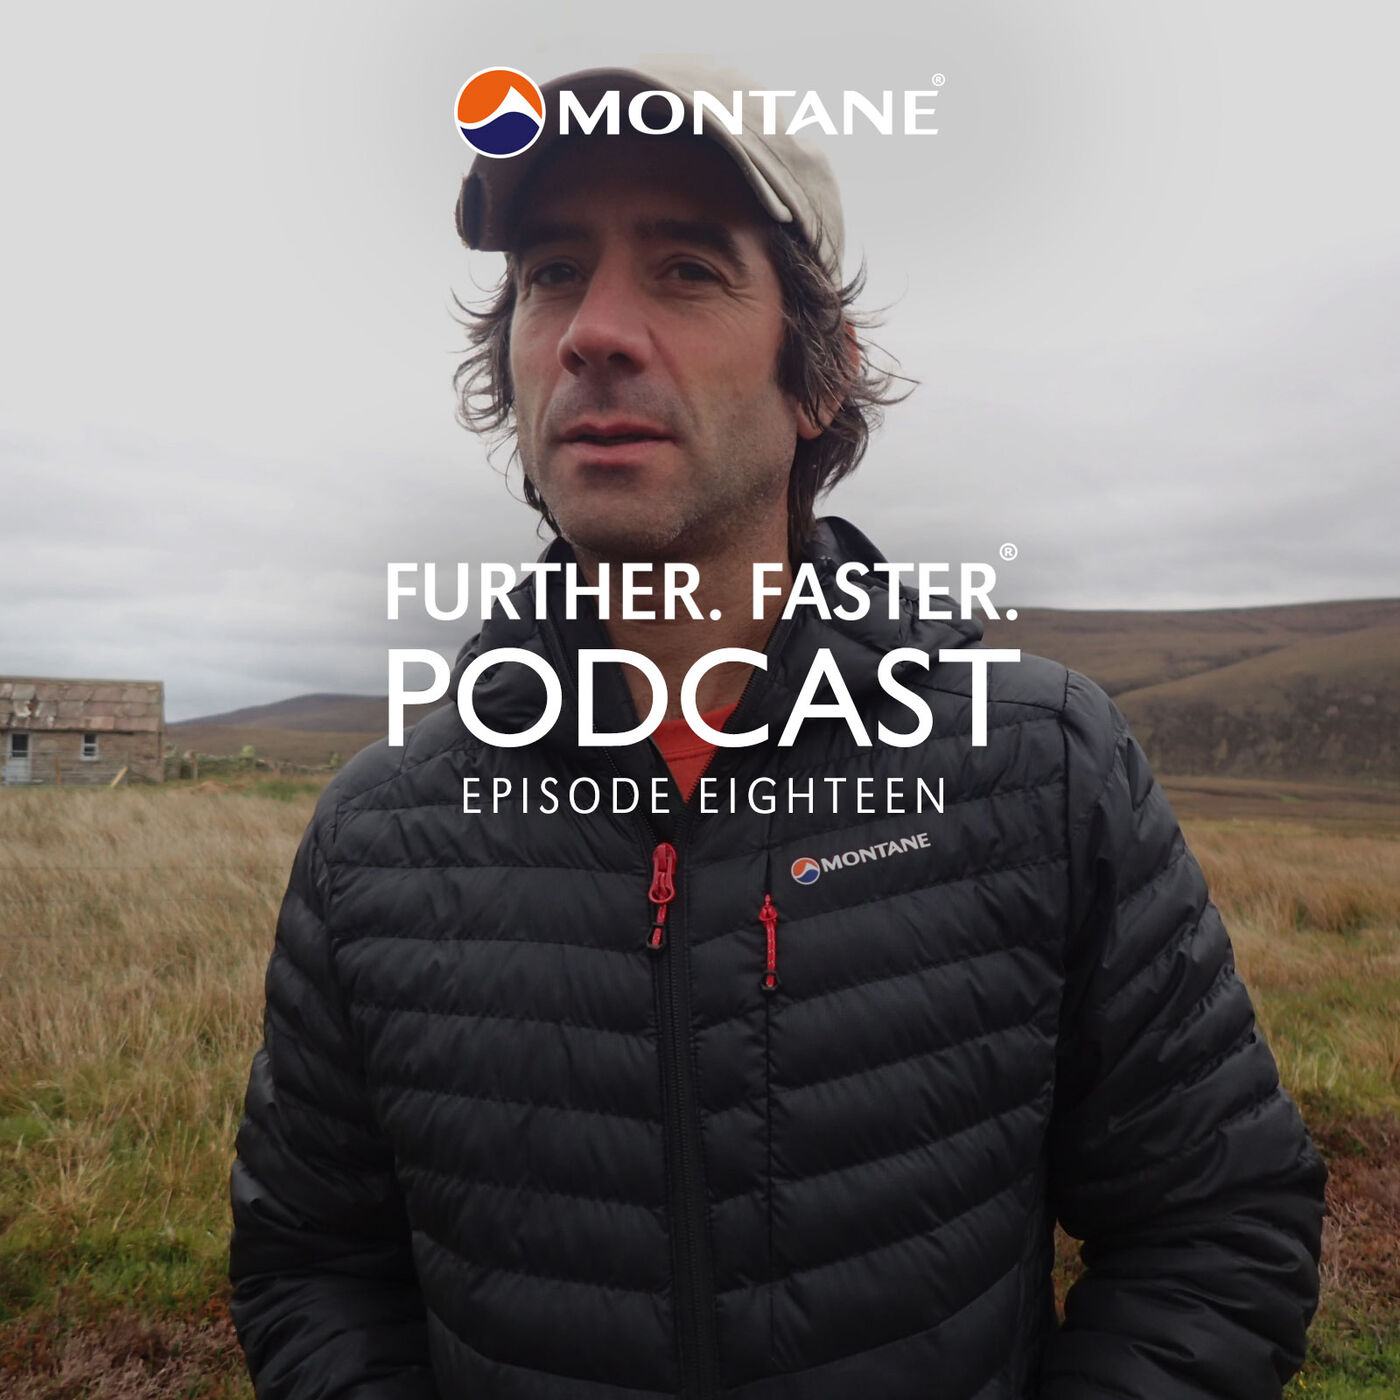 Further. Faster. Podcast Ep 18 (Behind the Lense of Expedition Film Making with Al Lee)